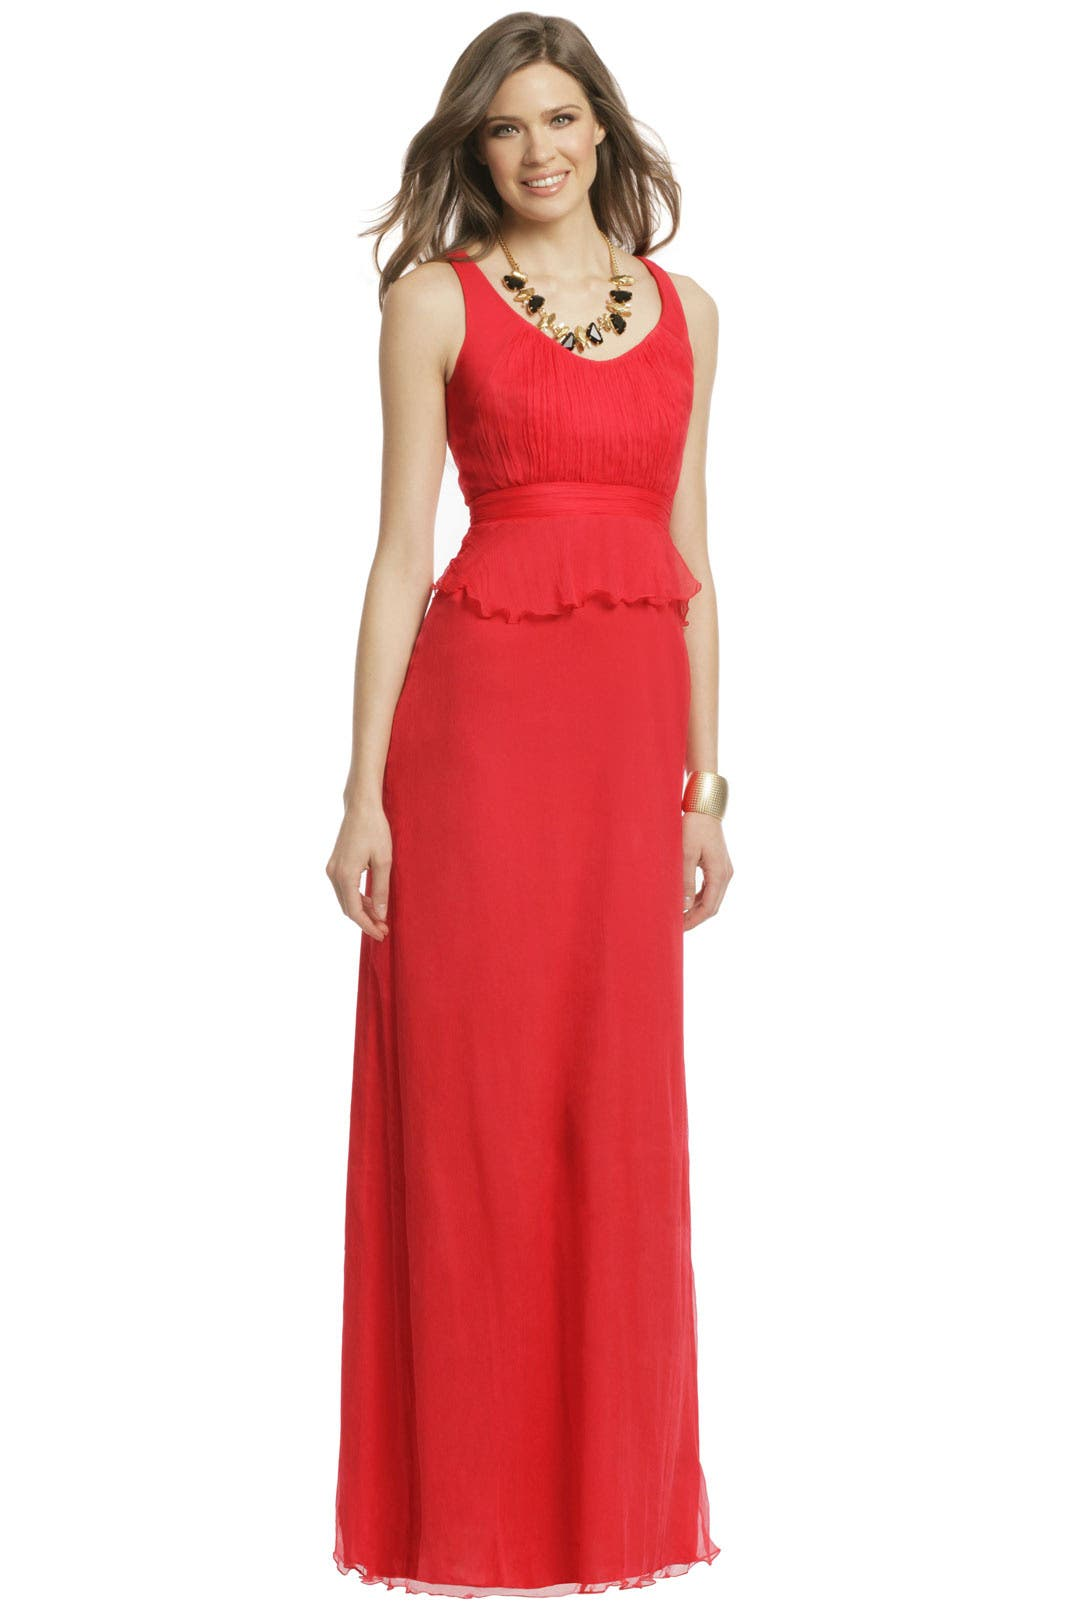 Red Pepper Hot gown by Carlos Miele